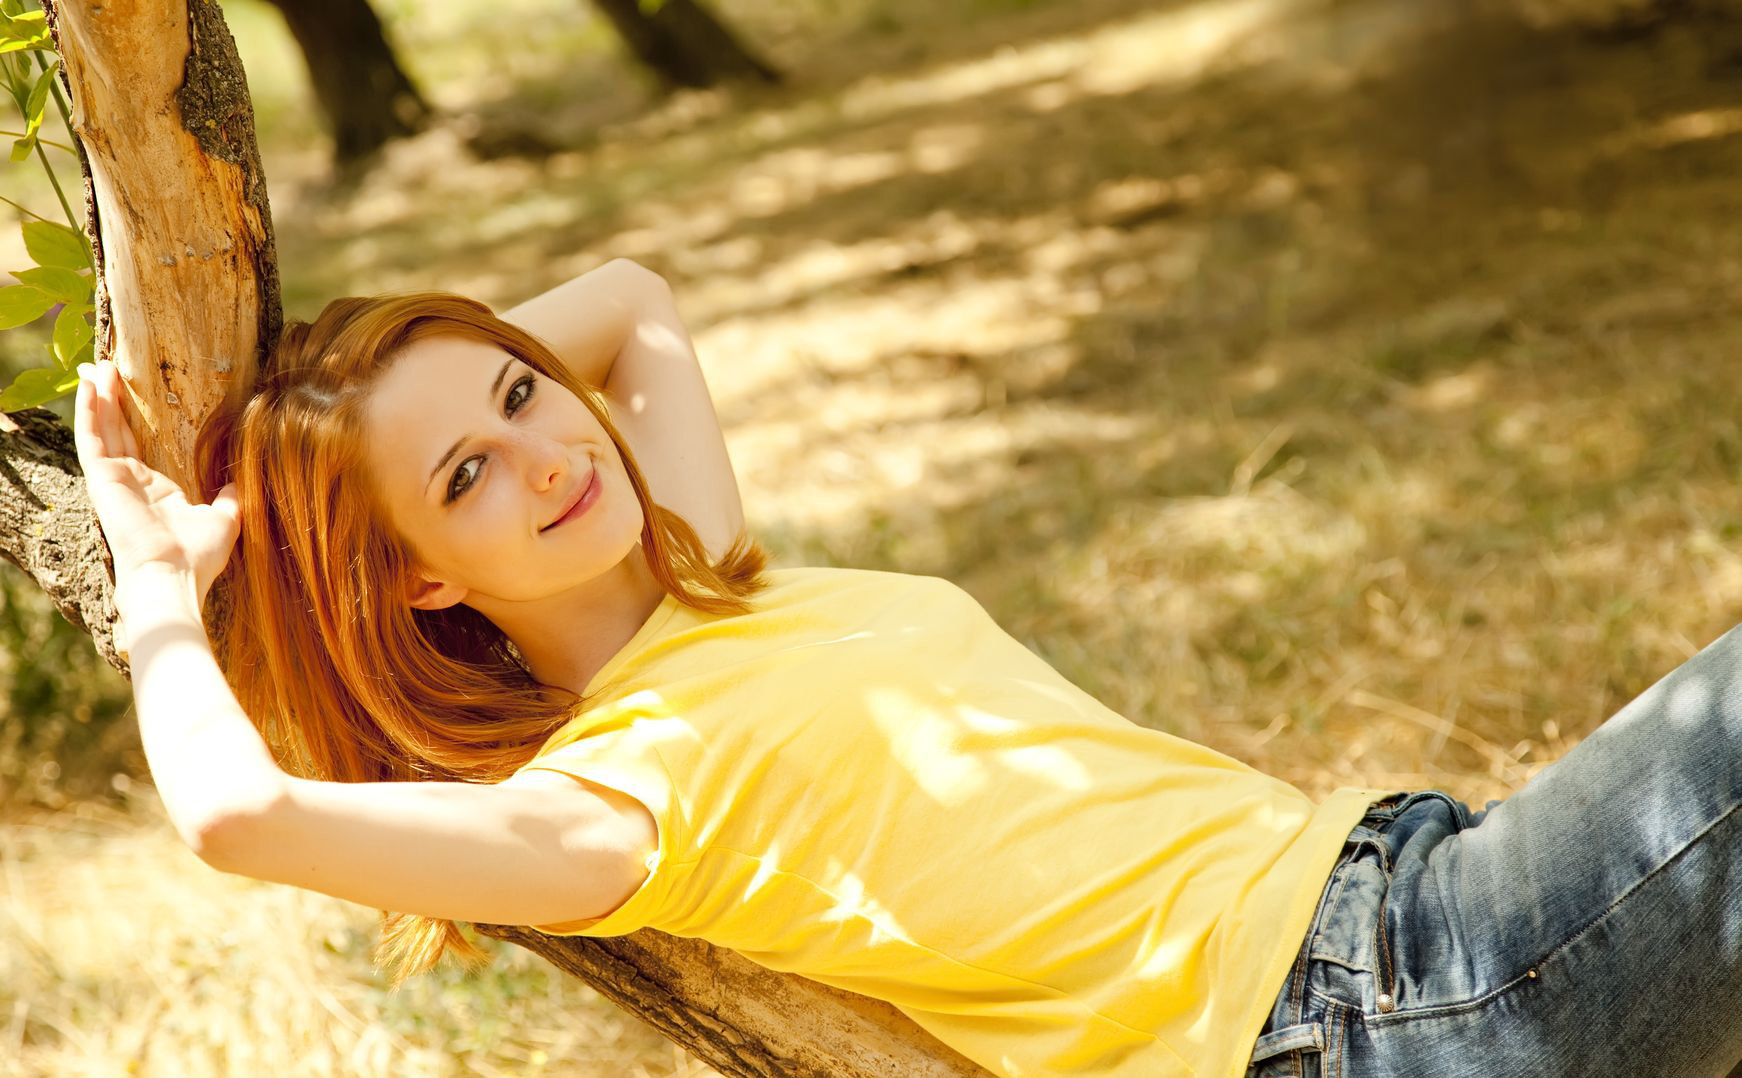 redhead wearing yellow t-shirt with blue jeans posing in tree